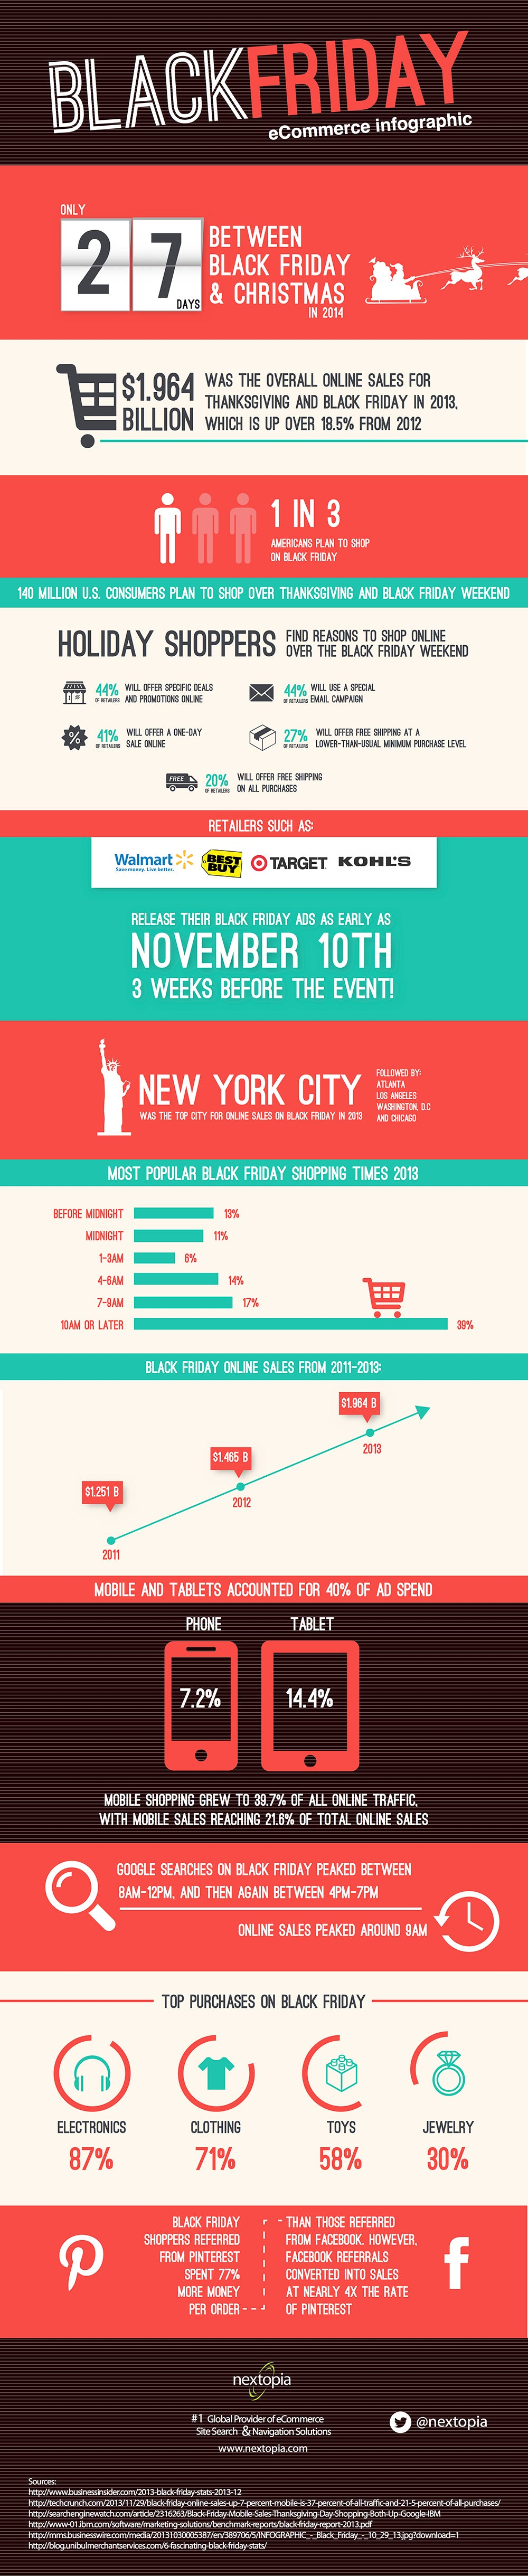 Preparing for Black Friday? Check Out These Stats About Online Sales. (Infographic)